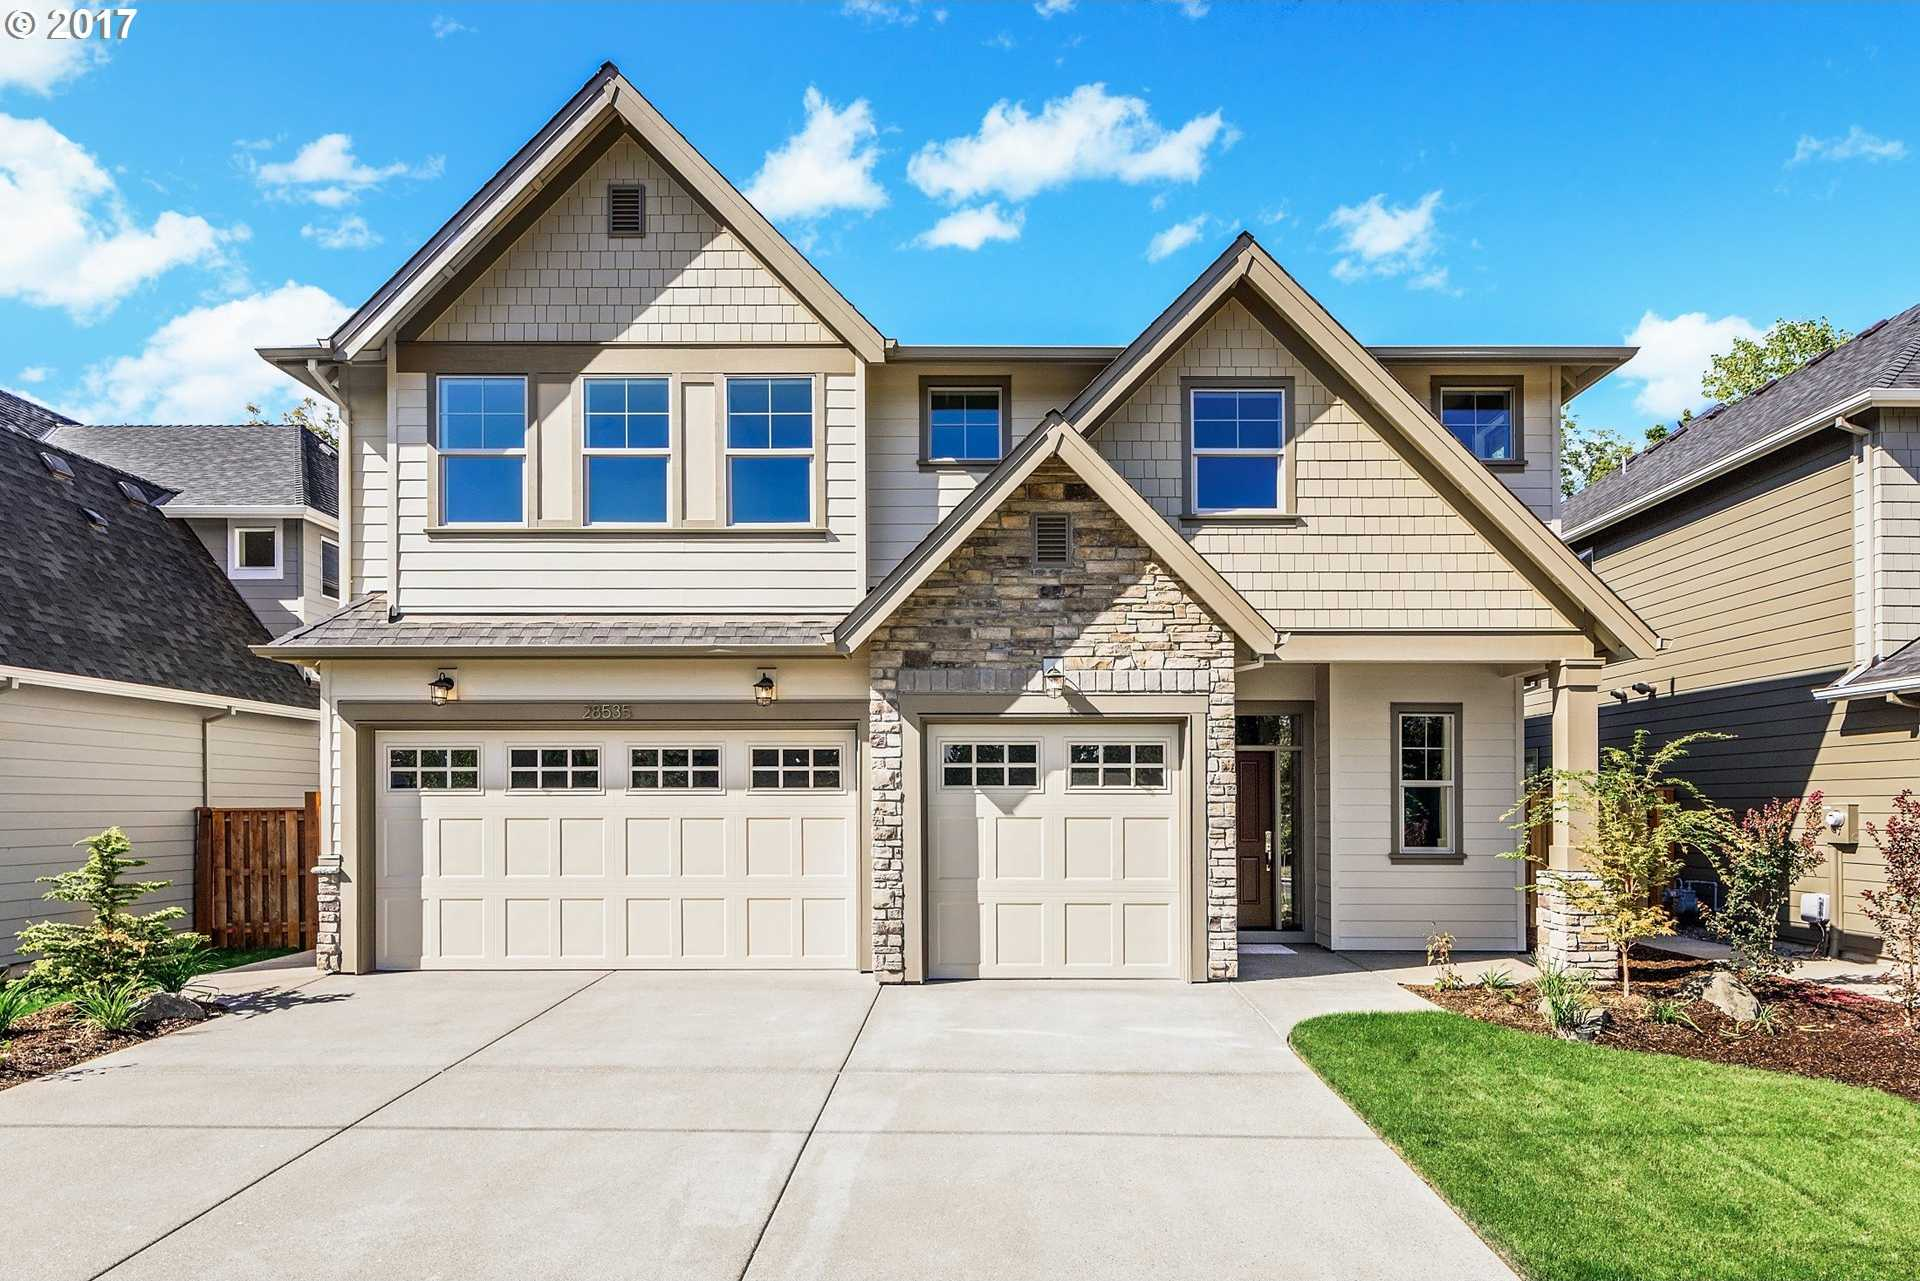 $749,900 - 5Br/4Ba -  for Sale in Canyon Creek, Wilsonville